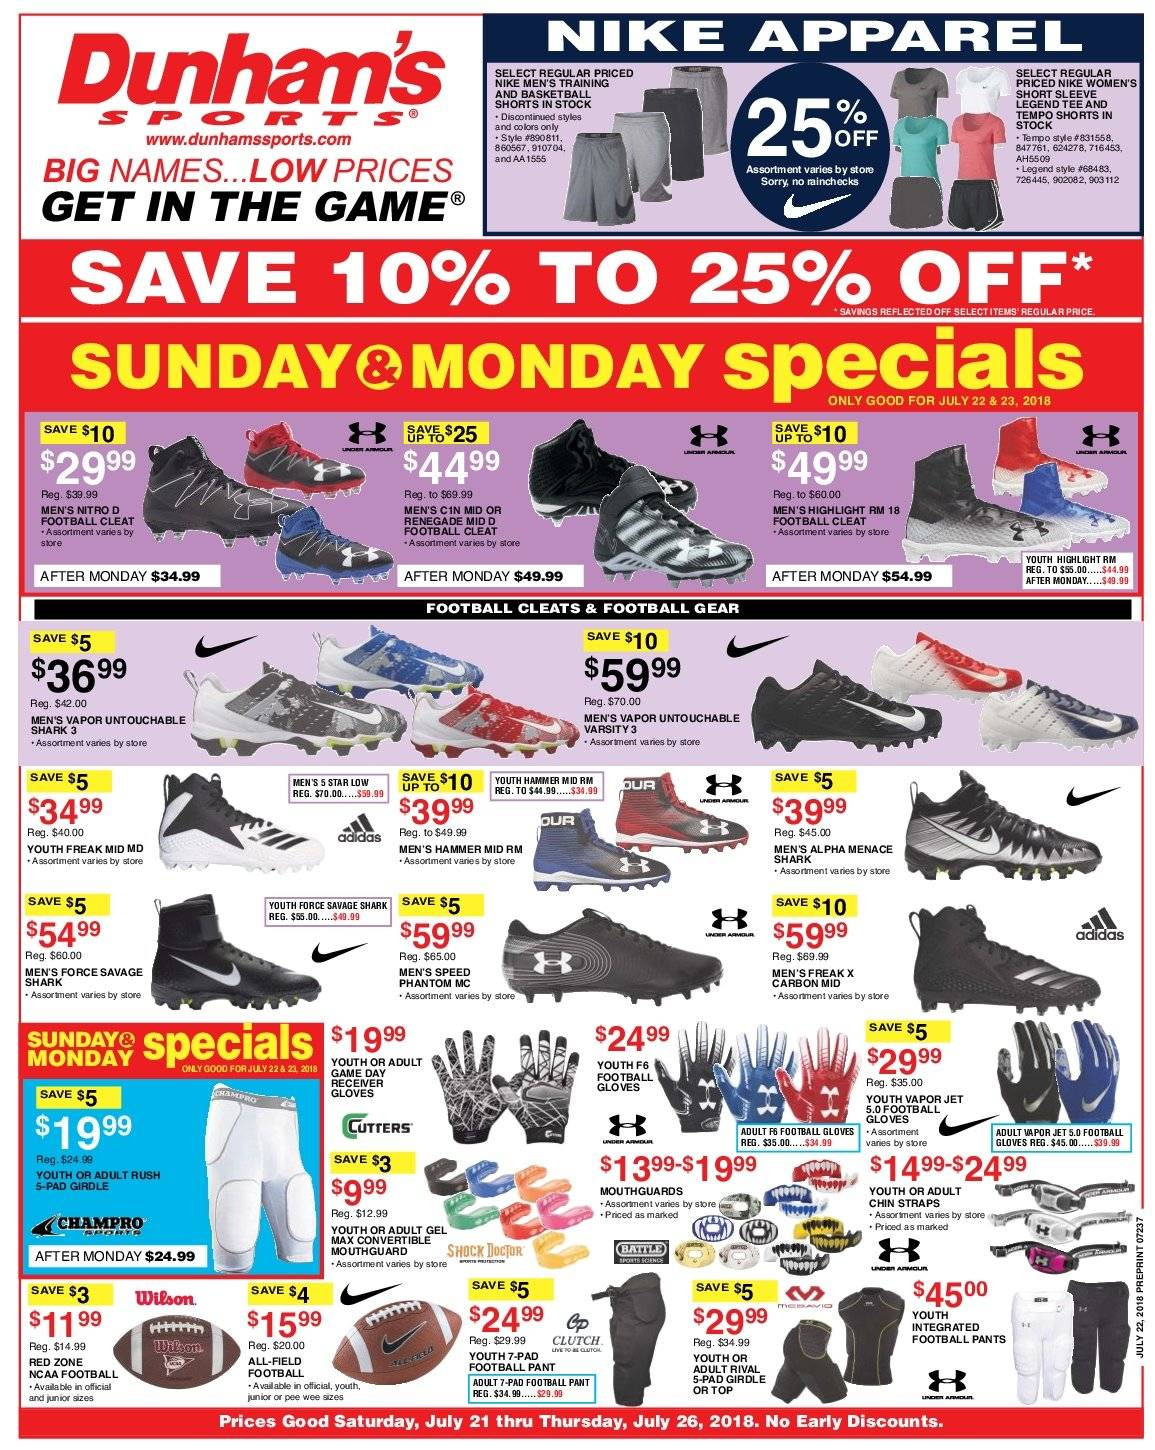 Dunham's Sports Flyer - 07.21.2018 - 07.26.2018 - Sales products - adidas, apparel, gloves, receiver, shorts, tee, wilson, pants, nike. Page 1.